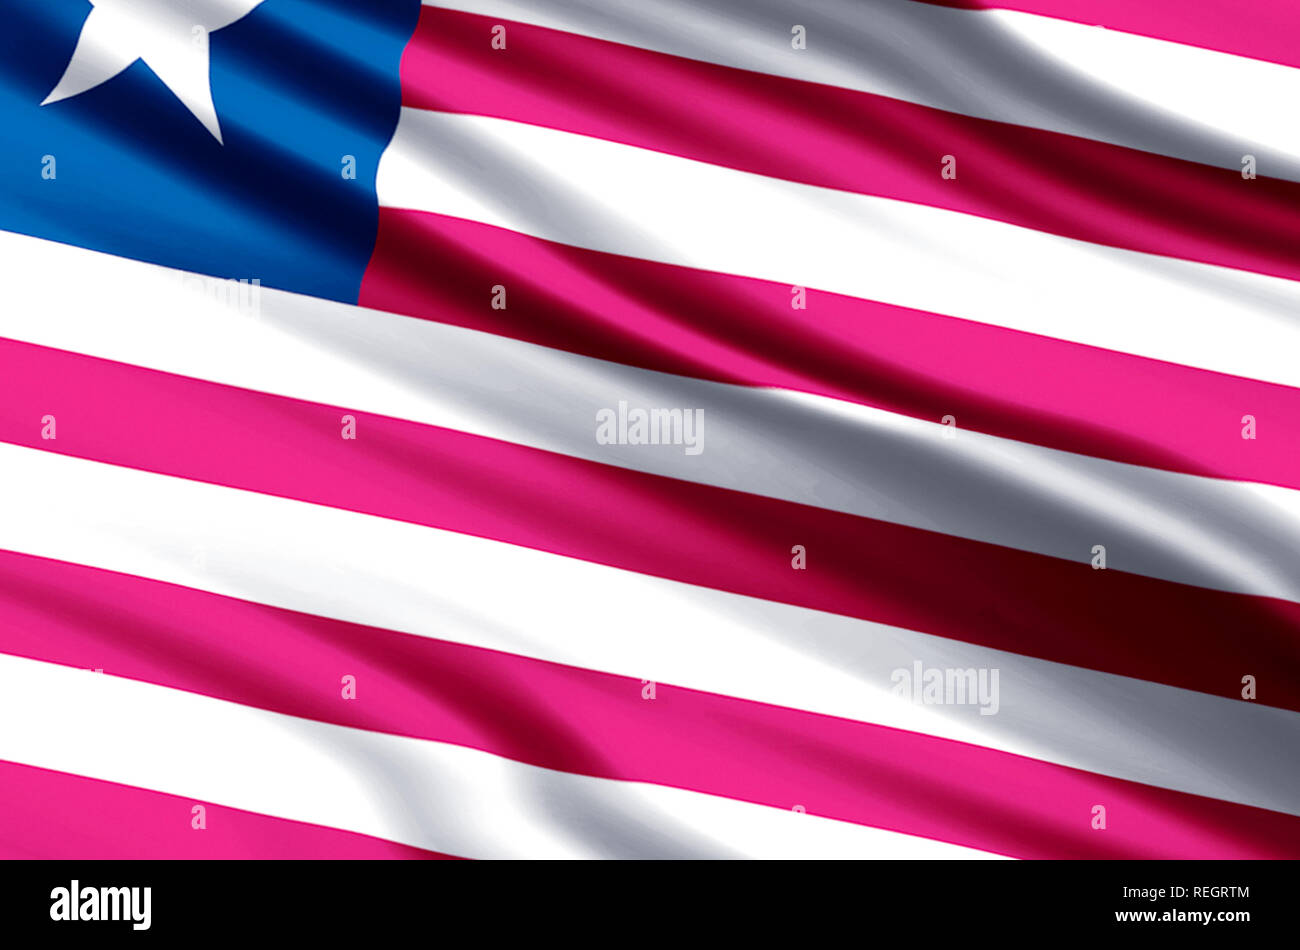 Liberia waving and closeup flag illustration. Perfect for background or texture purposes. - Stock Image